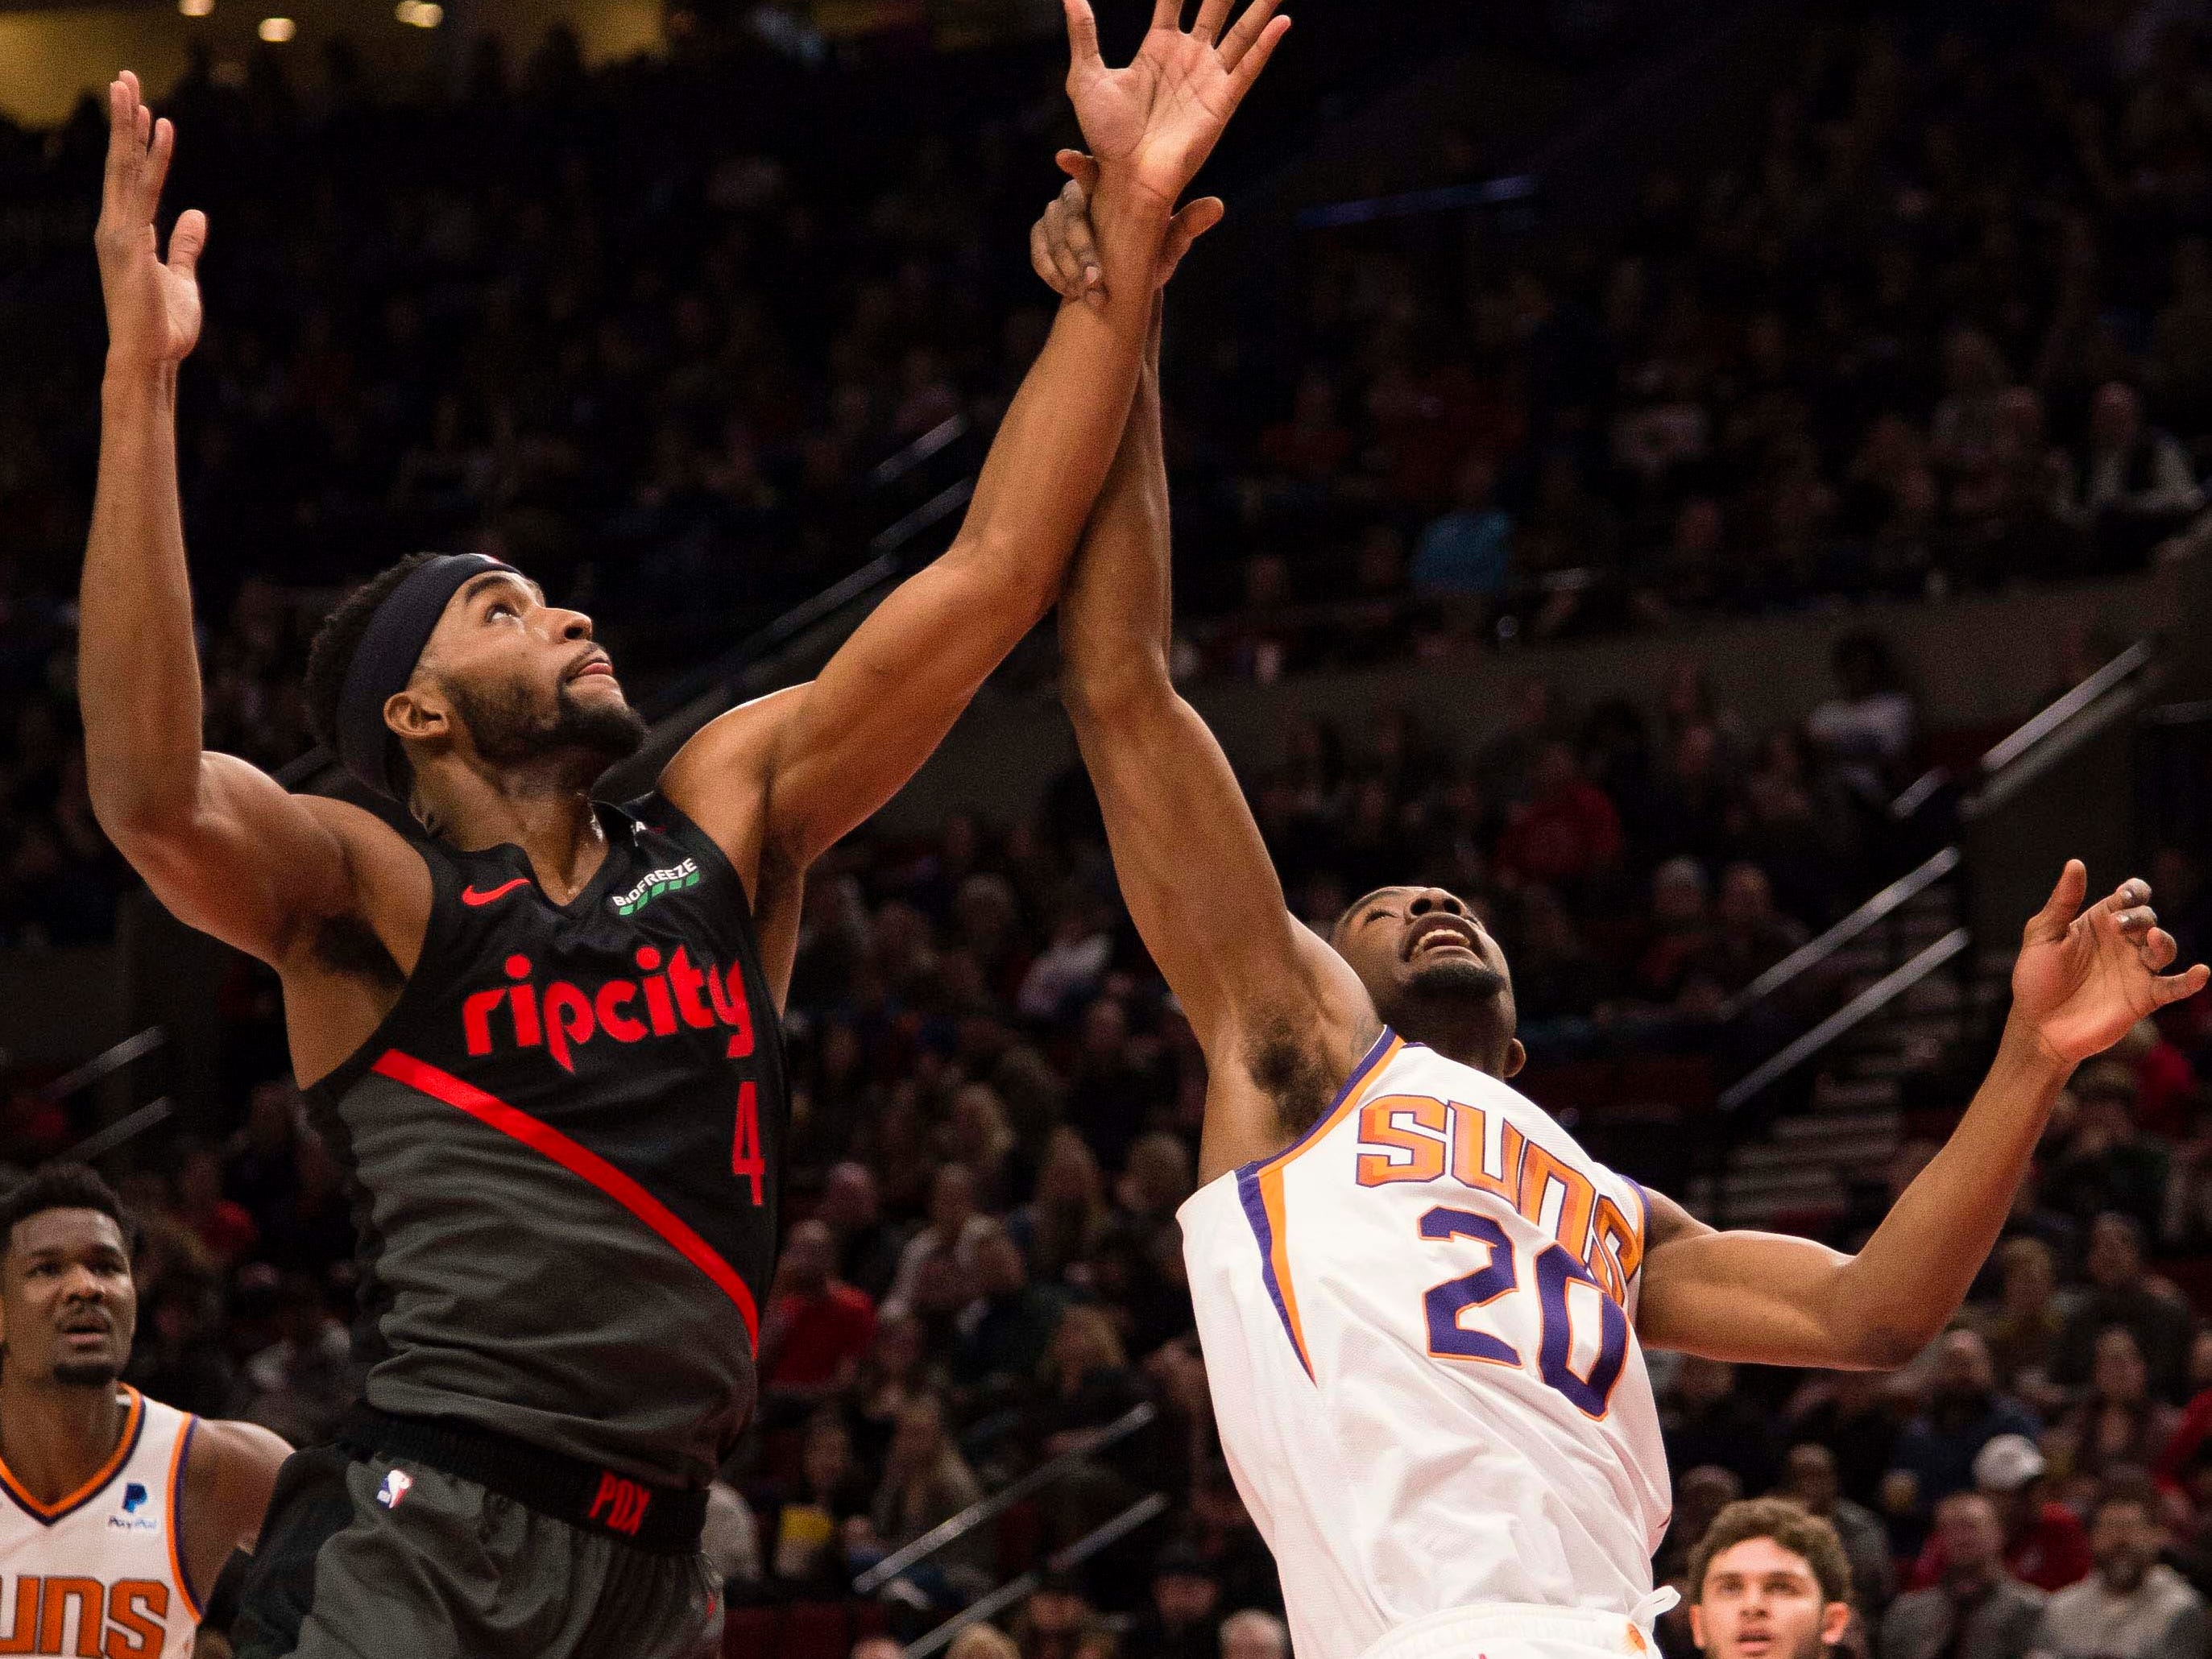 Mar 9, 2019; Portland, OR, USA; Phoenix Suns forward Josh Jackson (20) scrambles for a rebound against Portland Trail Blazers forward Maurice Harkless (4) during the first half at Moda Center.